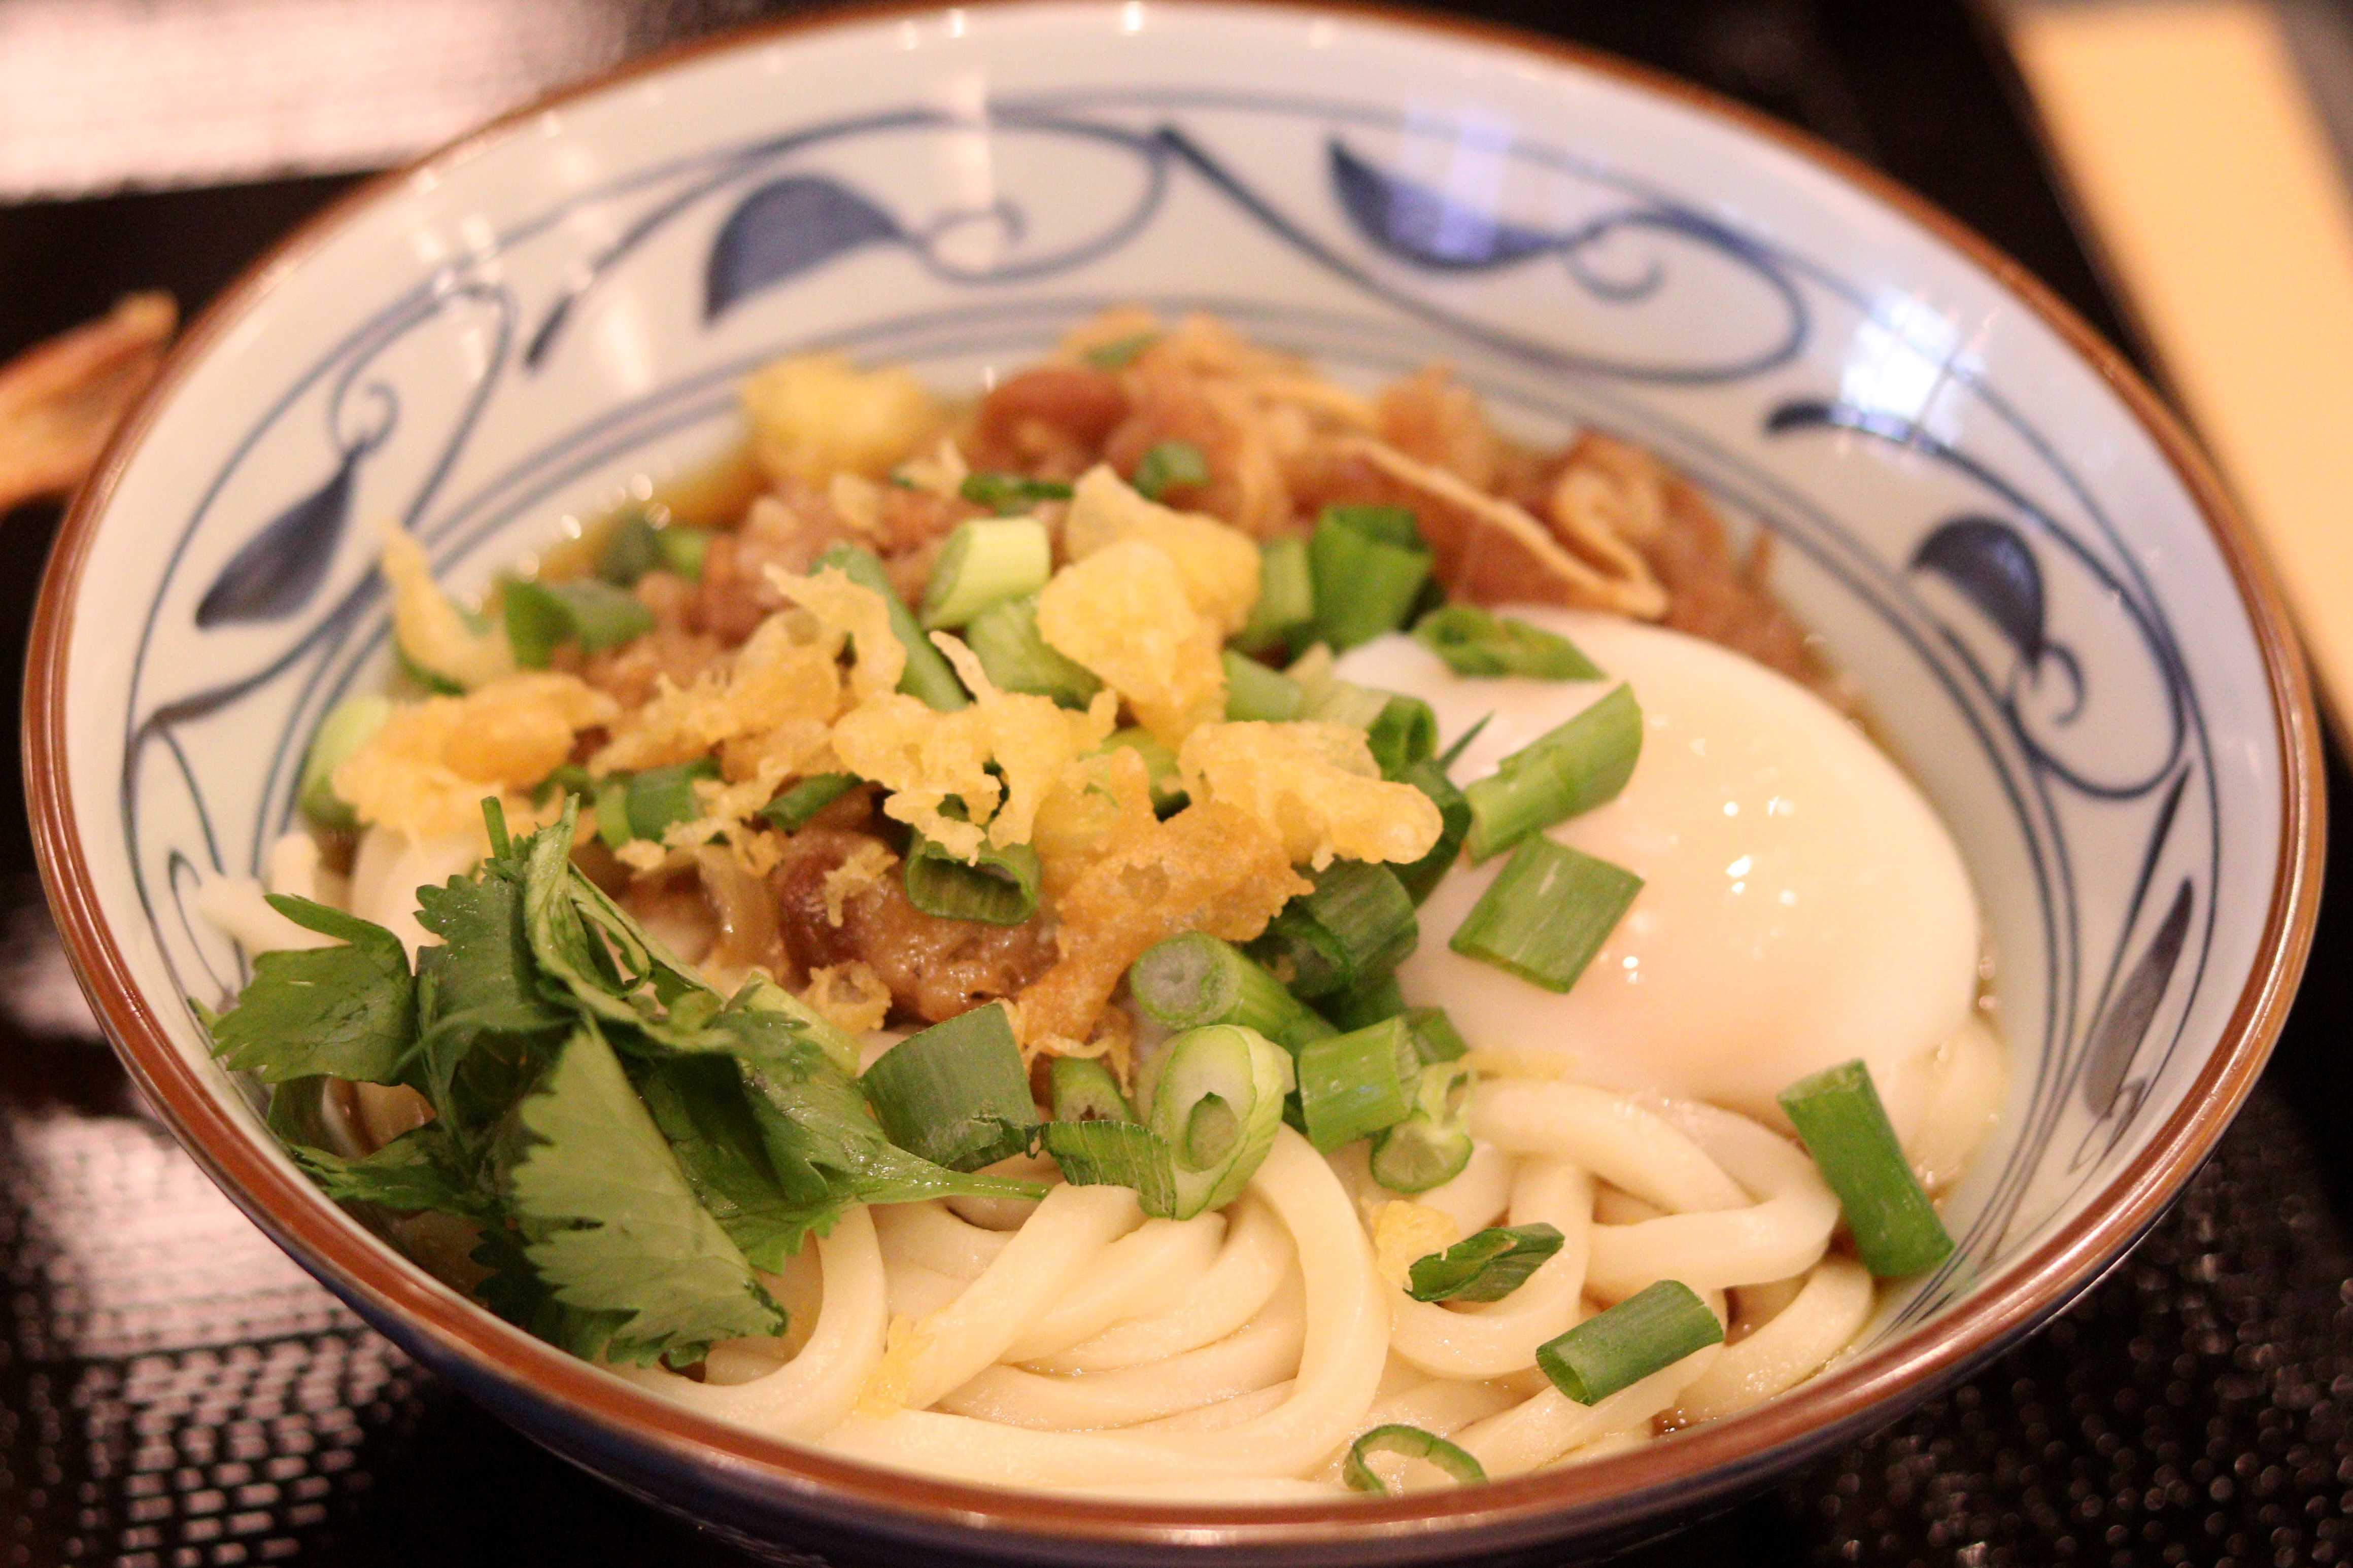 A bowl of Nikutama Udon at Marugame Udon at Stonestown Galleria in San Francisco on Wednesday, Feb. 28, 2018. (Oscar Rendon/Golden Gate Xpress)